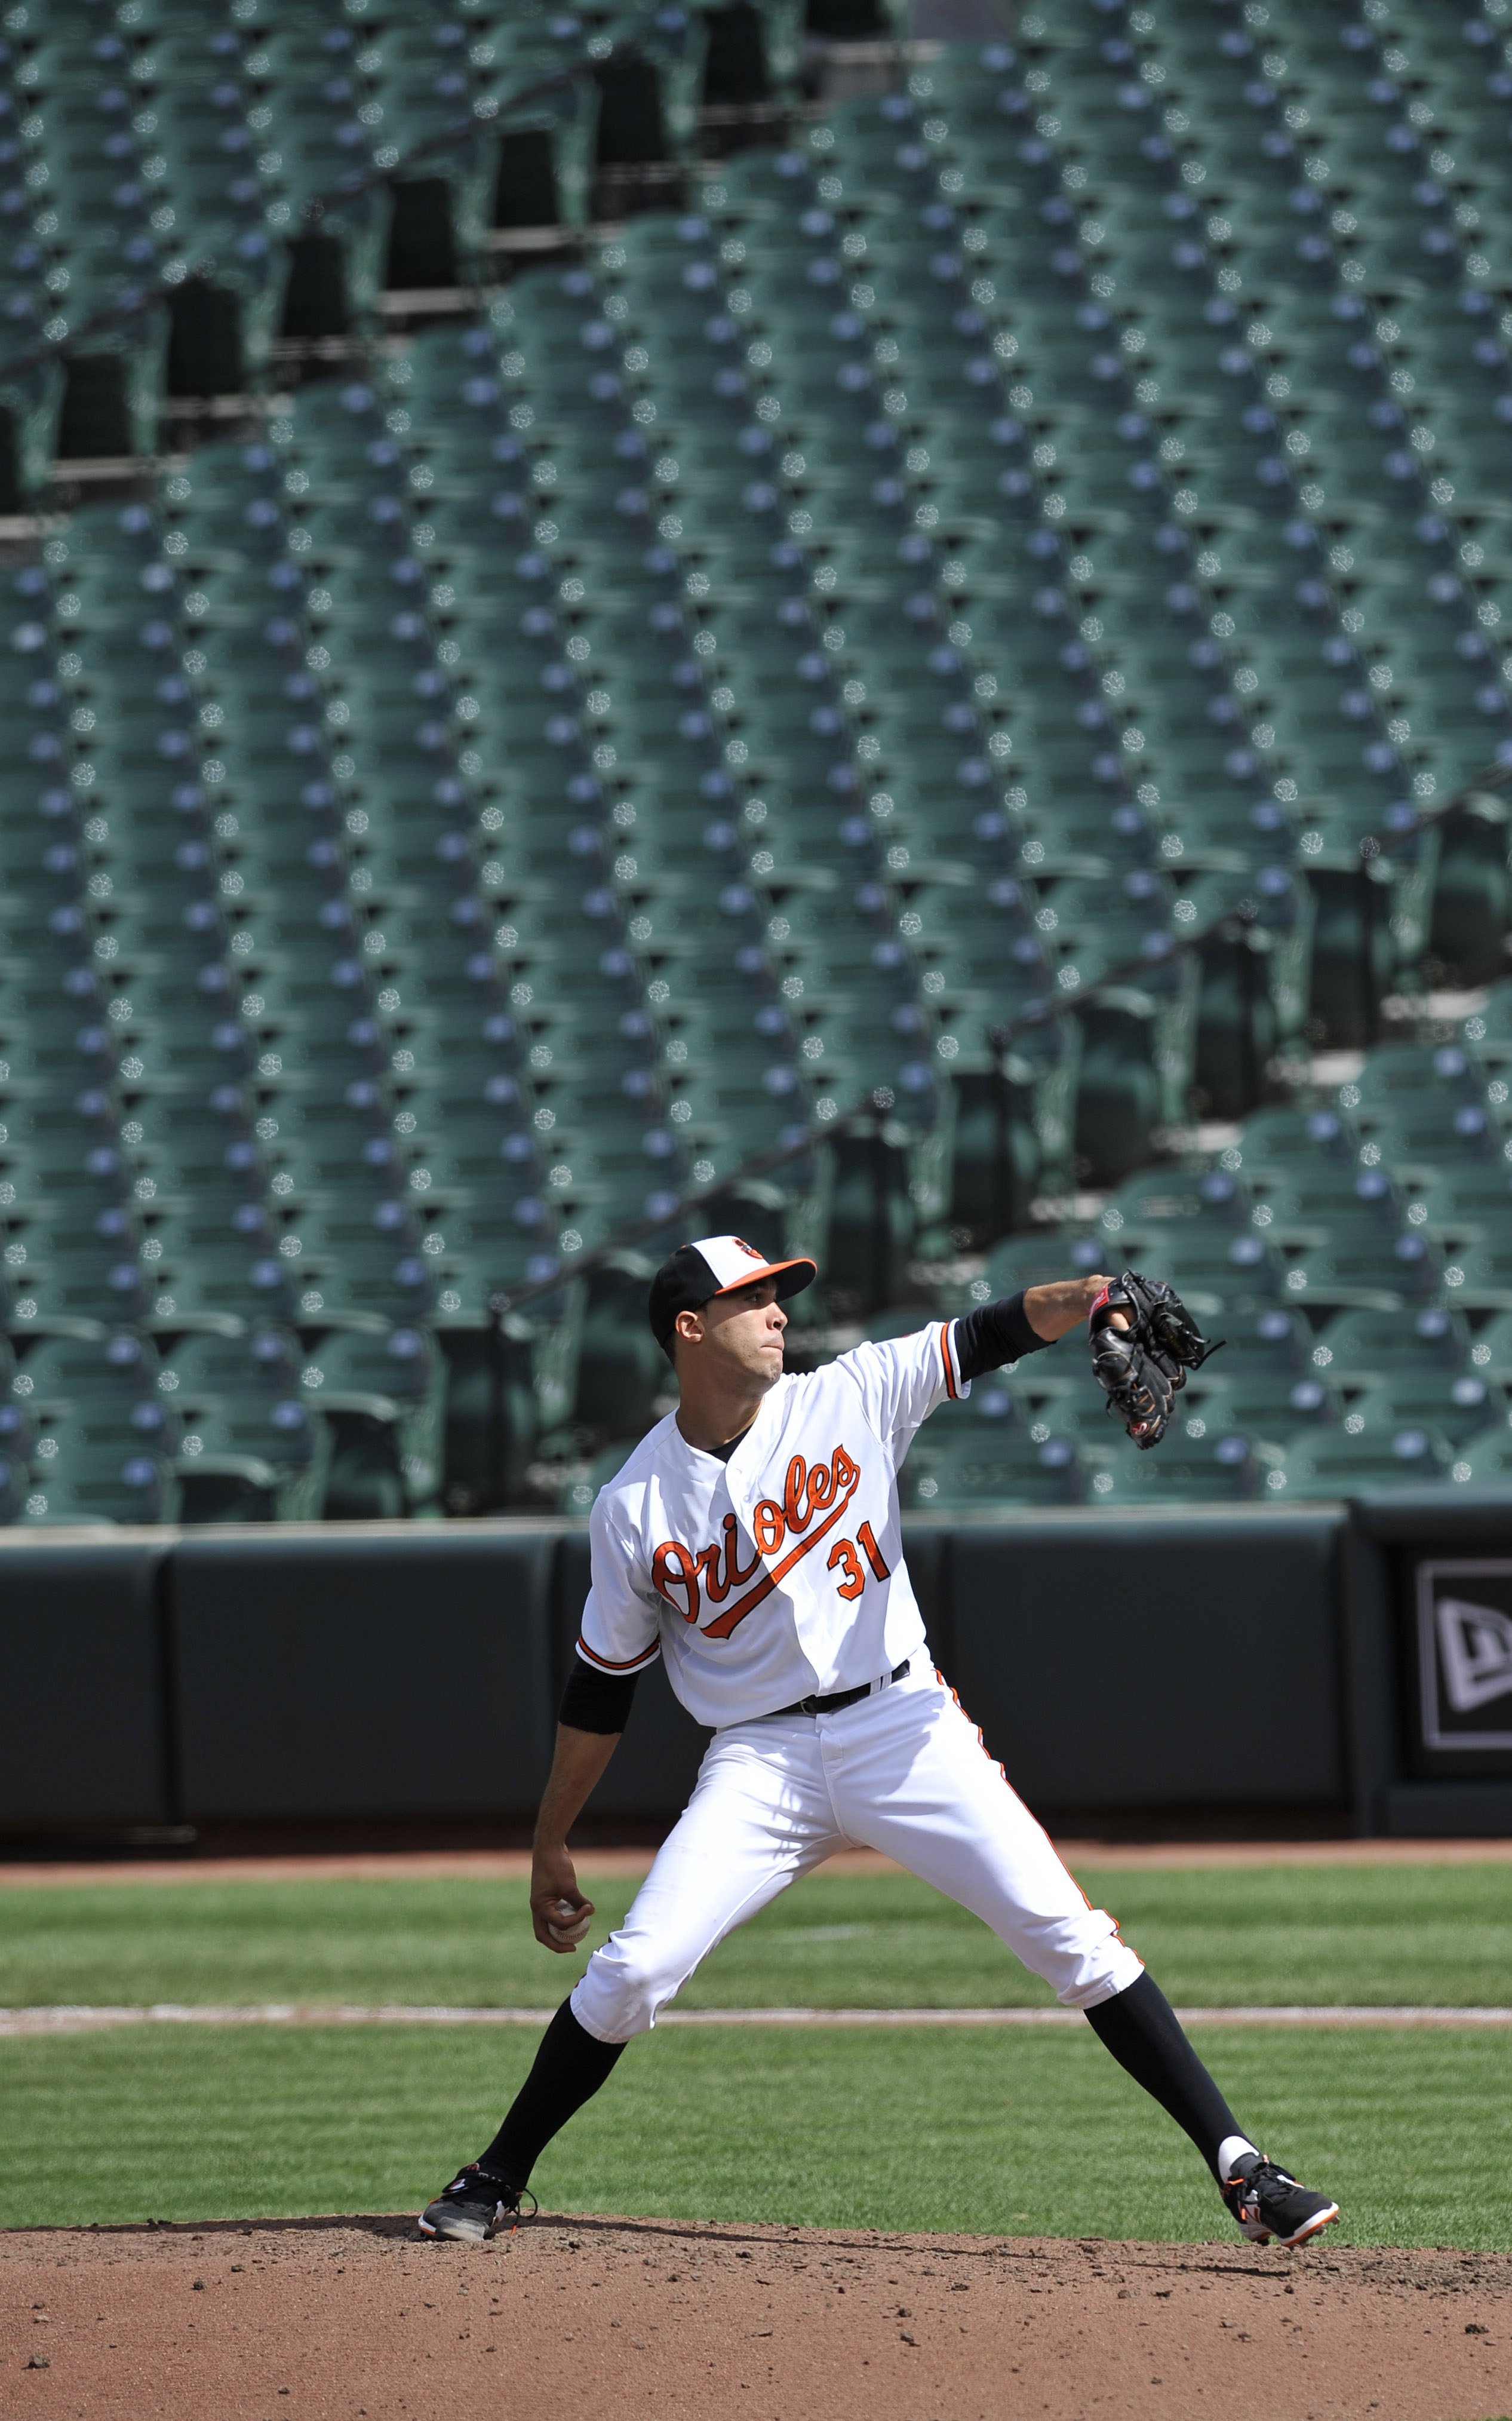 With a background of empty seats, Baltimore Orioles pitcher Ubaldo Jimenez throws against the Chicago White Sox during the fifth inning of a baseball game, Wednesday, April 29, 2015, in Baltimore. Due to security concerns the game was closed to the public